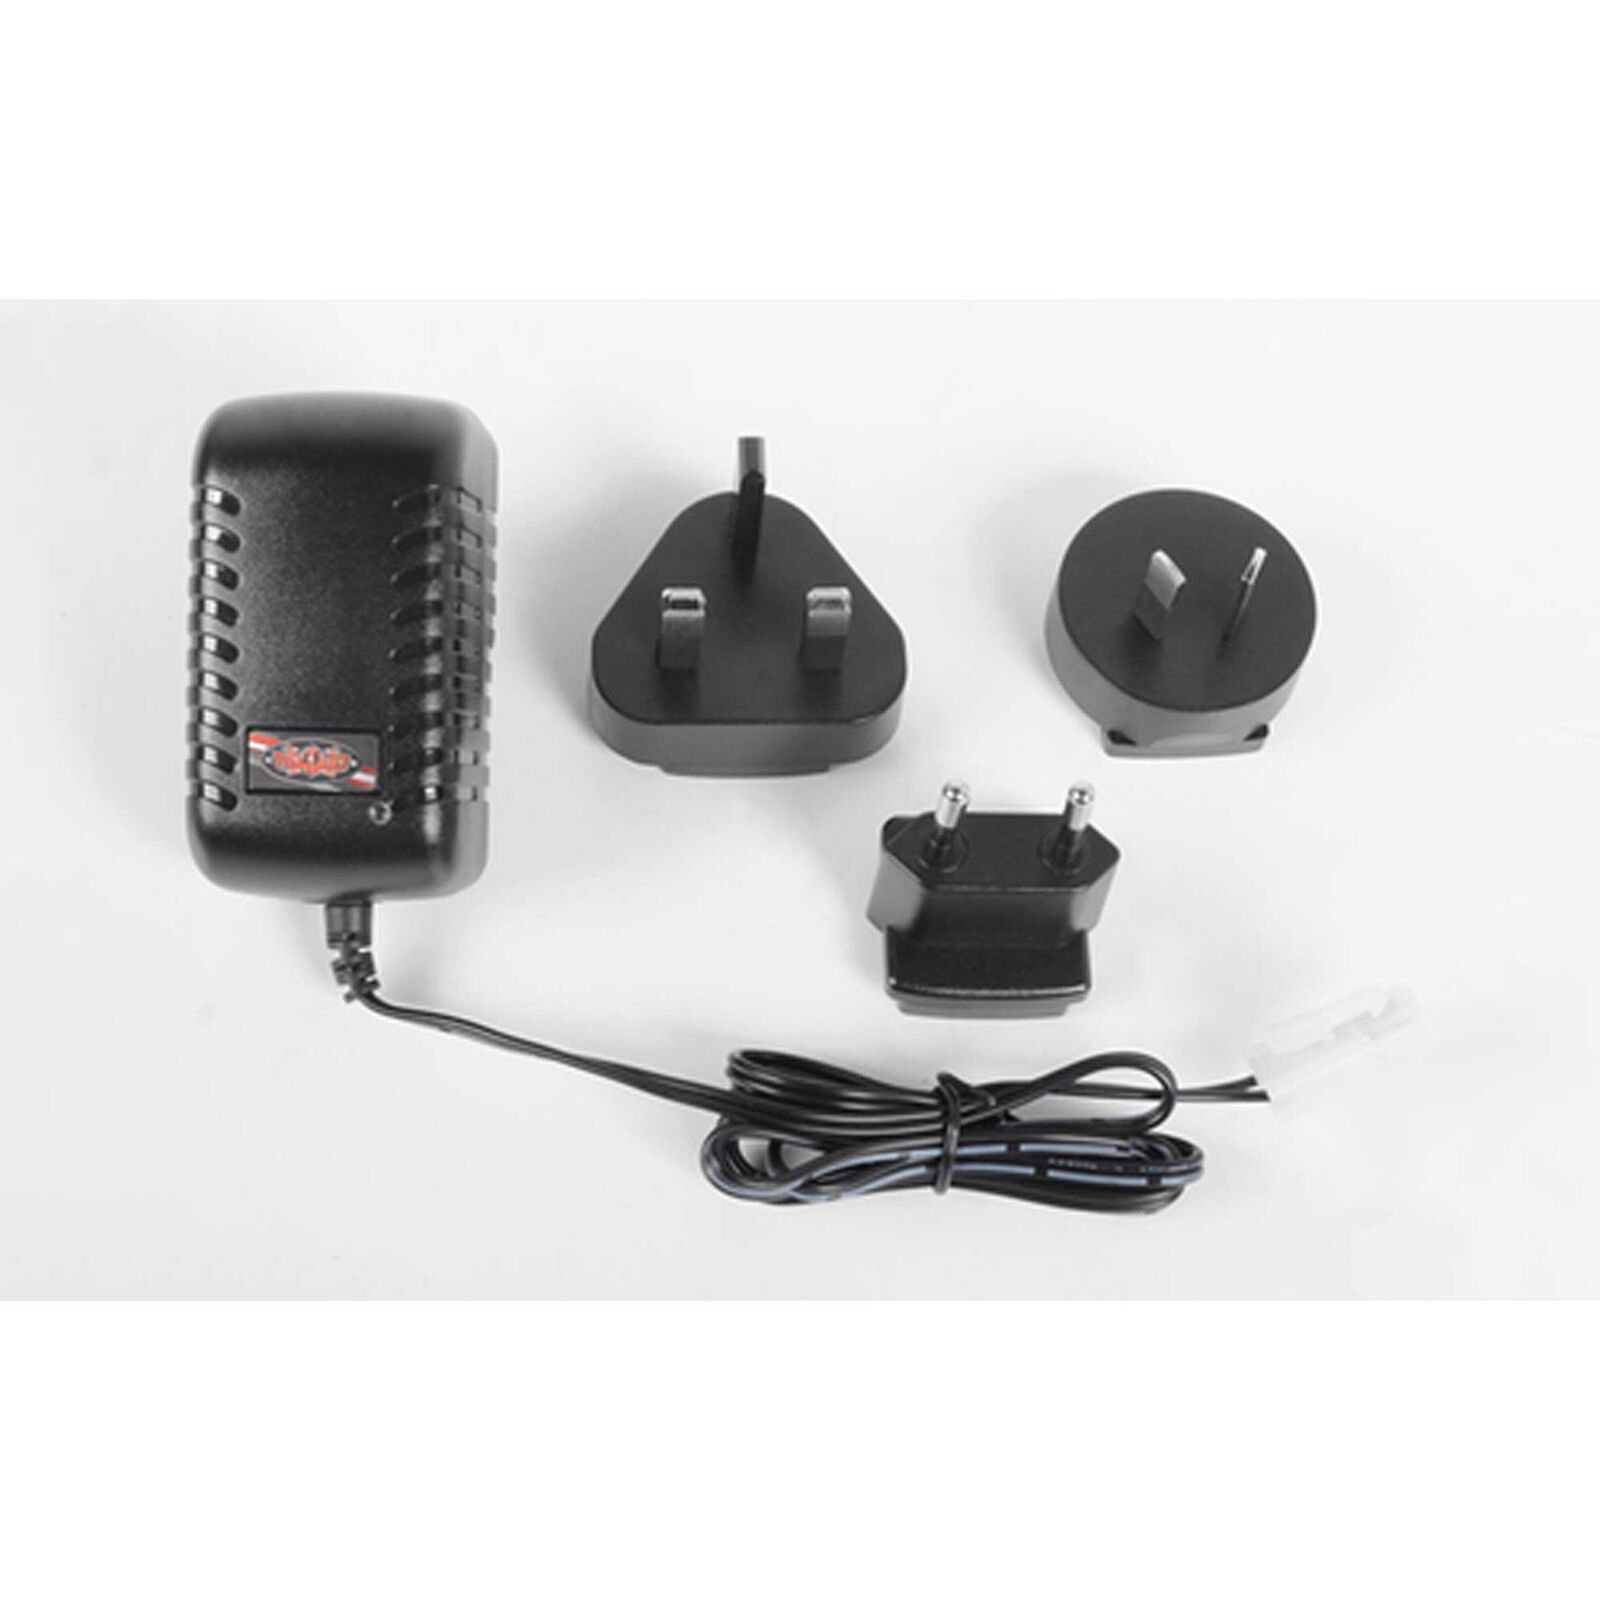 Universal NIMH Peak Battery Charger